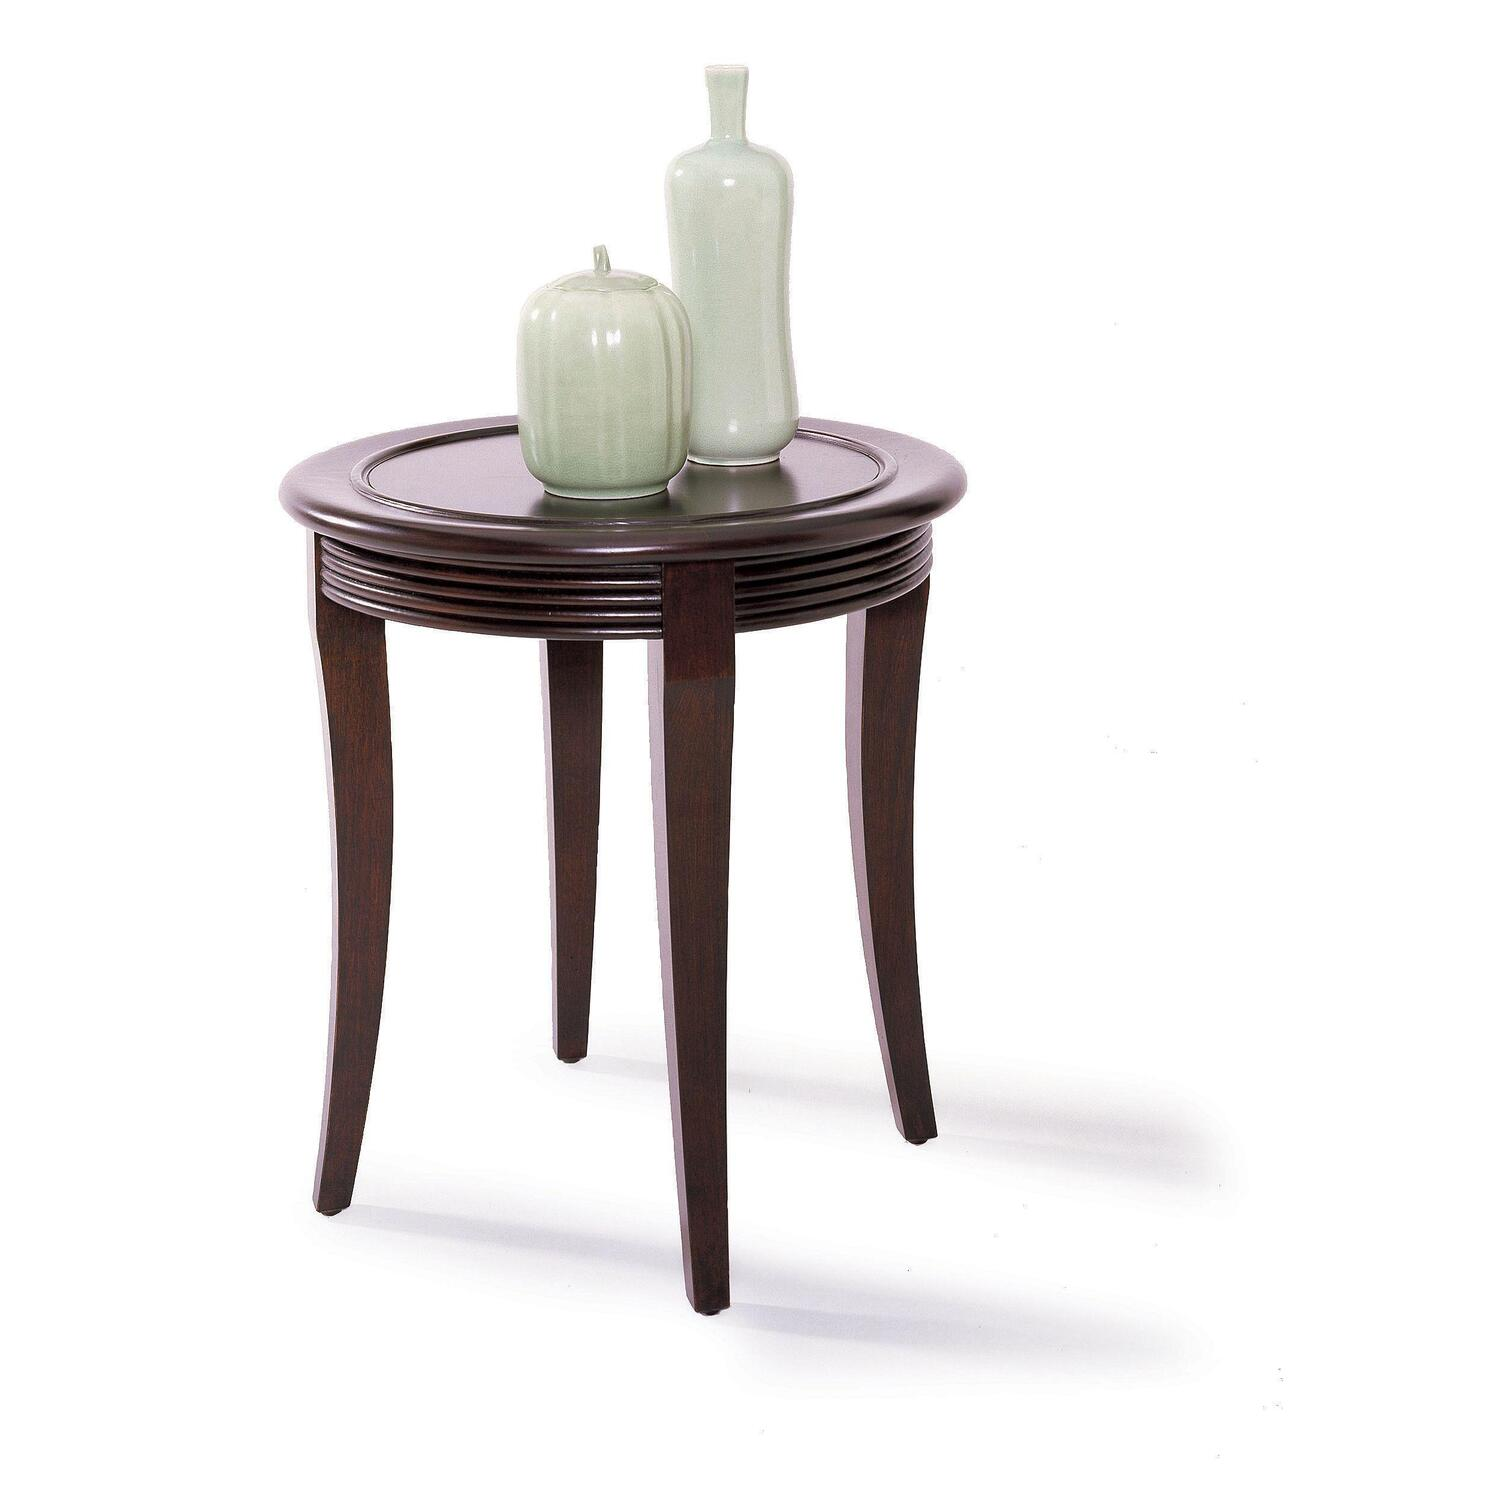 Lane urbana round end table by oj commerce 11754 09 for Table urbana but